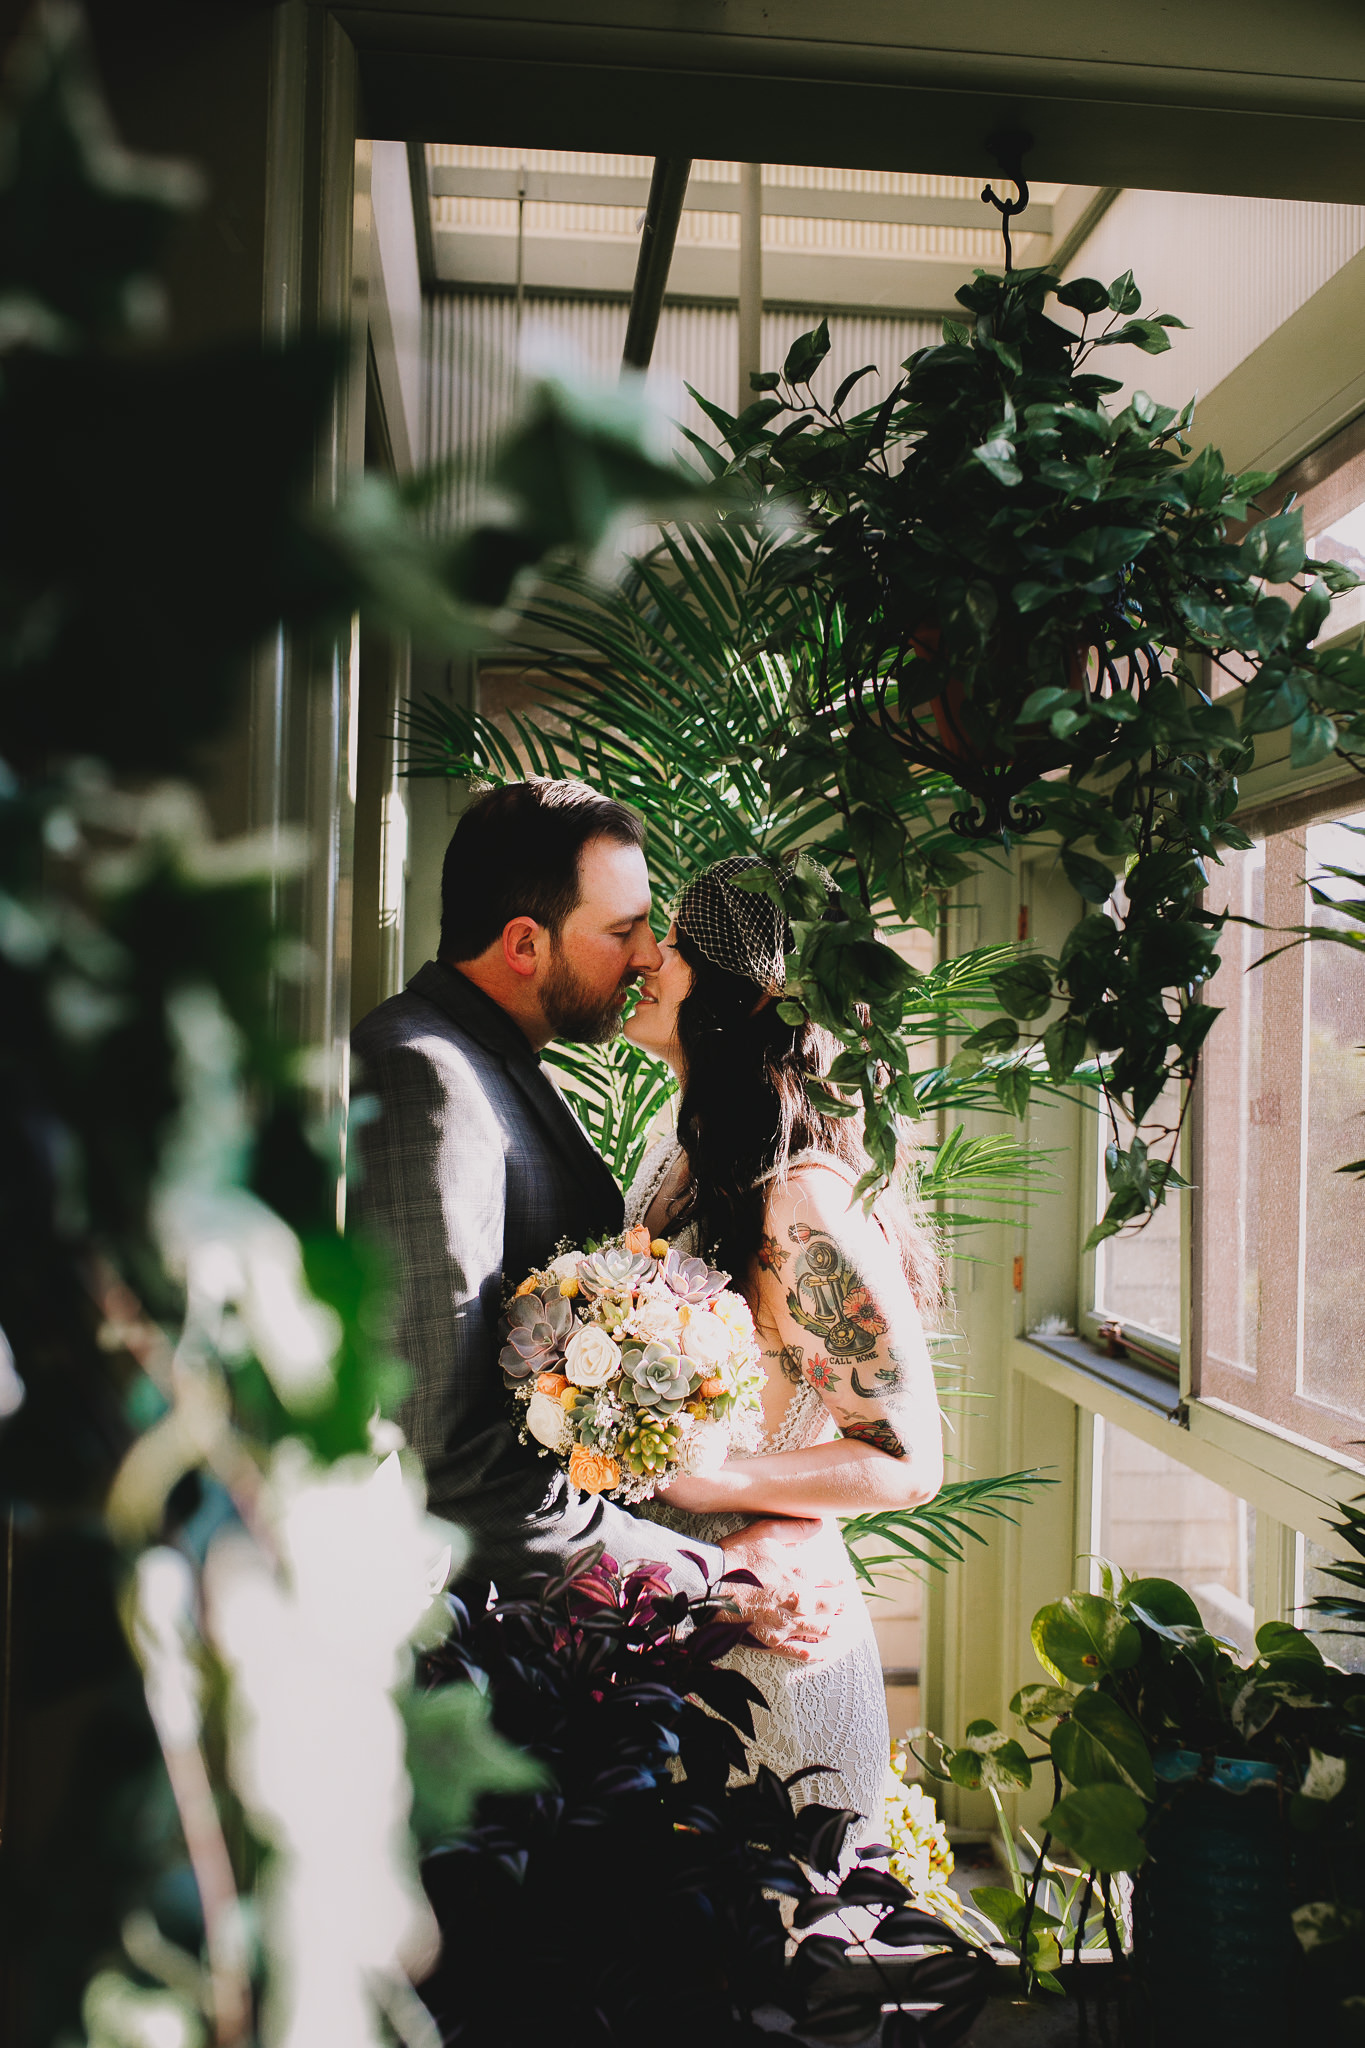 Archer Inspired Photography Sara and Aaron Winchester Mystery House NorCal San Jose California Wedding Photographer-271.jpg